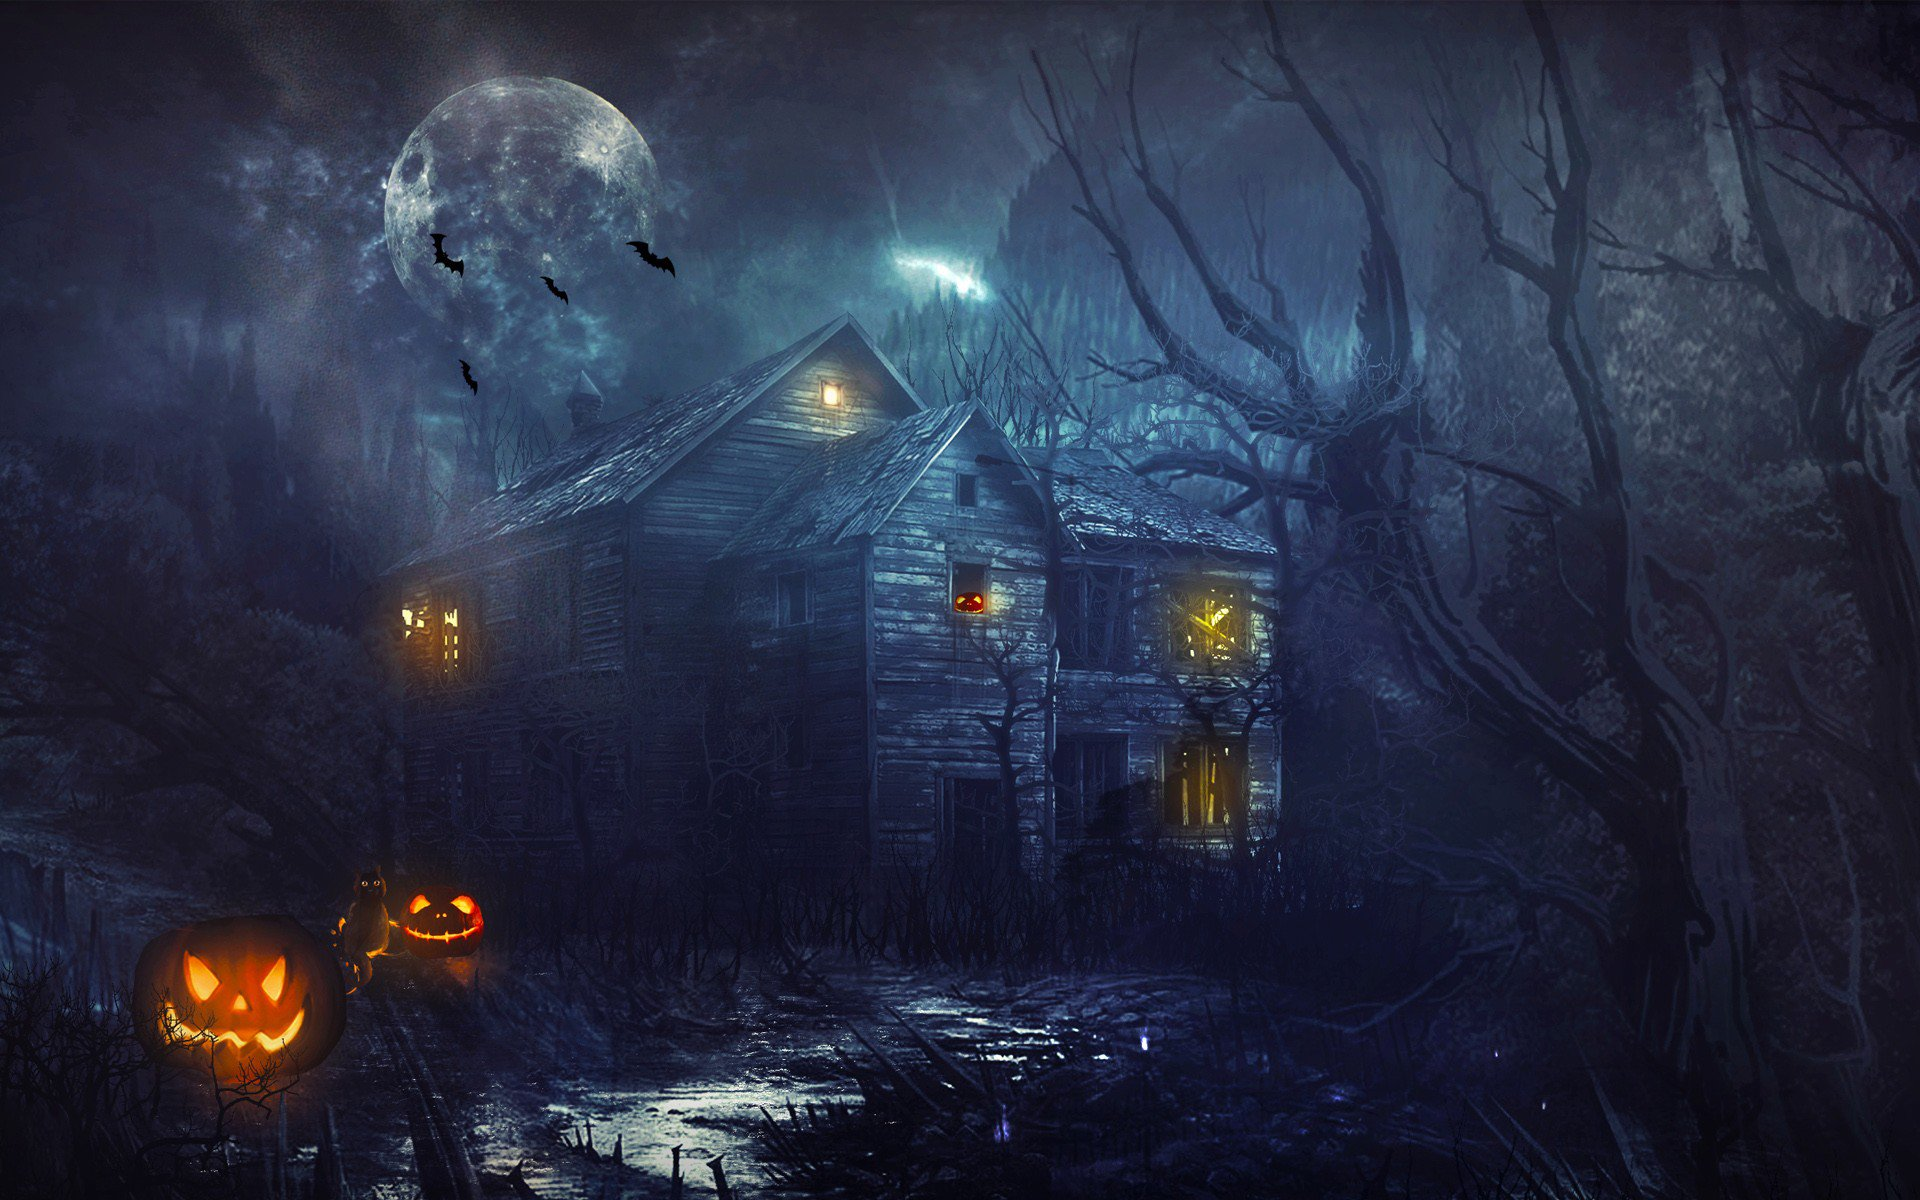 Haunted House 3d Live Wallpaper Download 1024x1204 2016 Halloween 1024x1204 Resolution Hd 4k